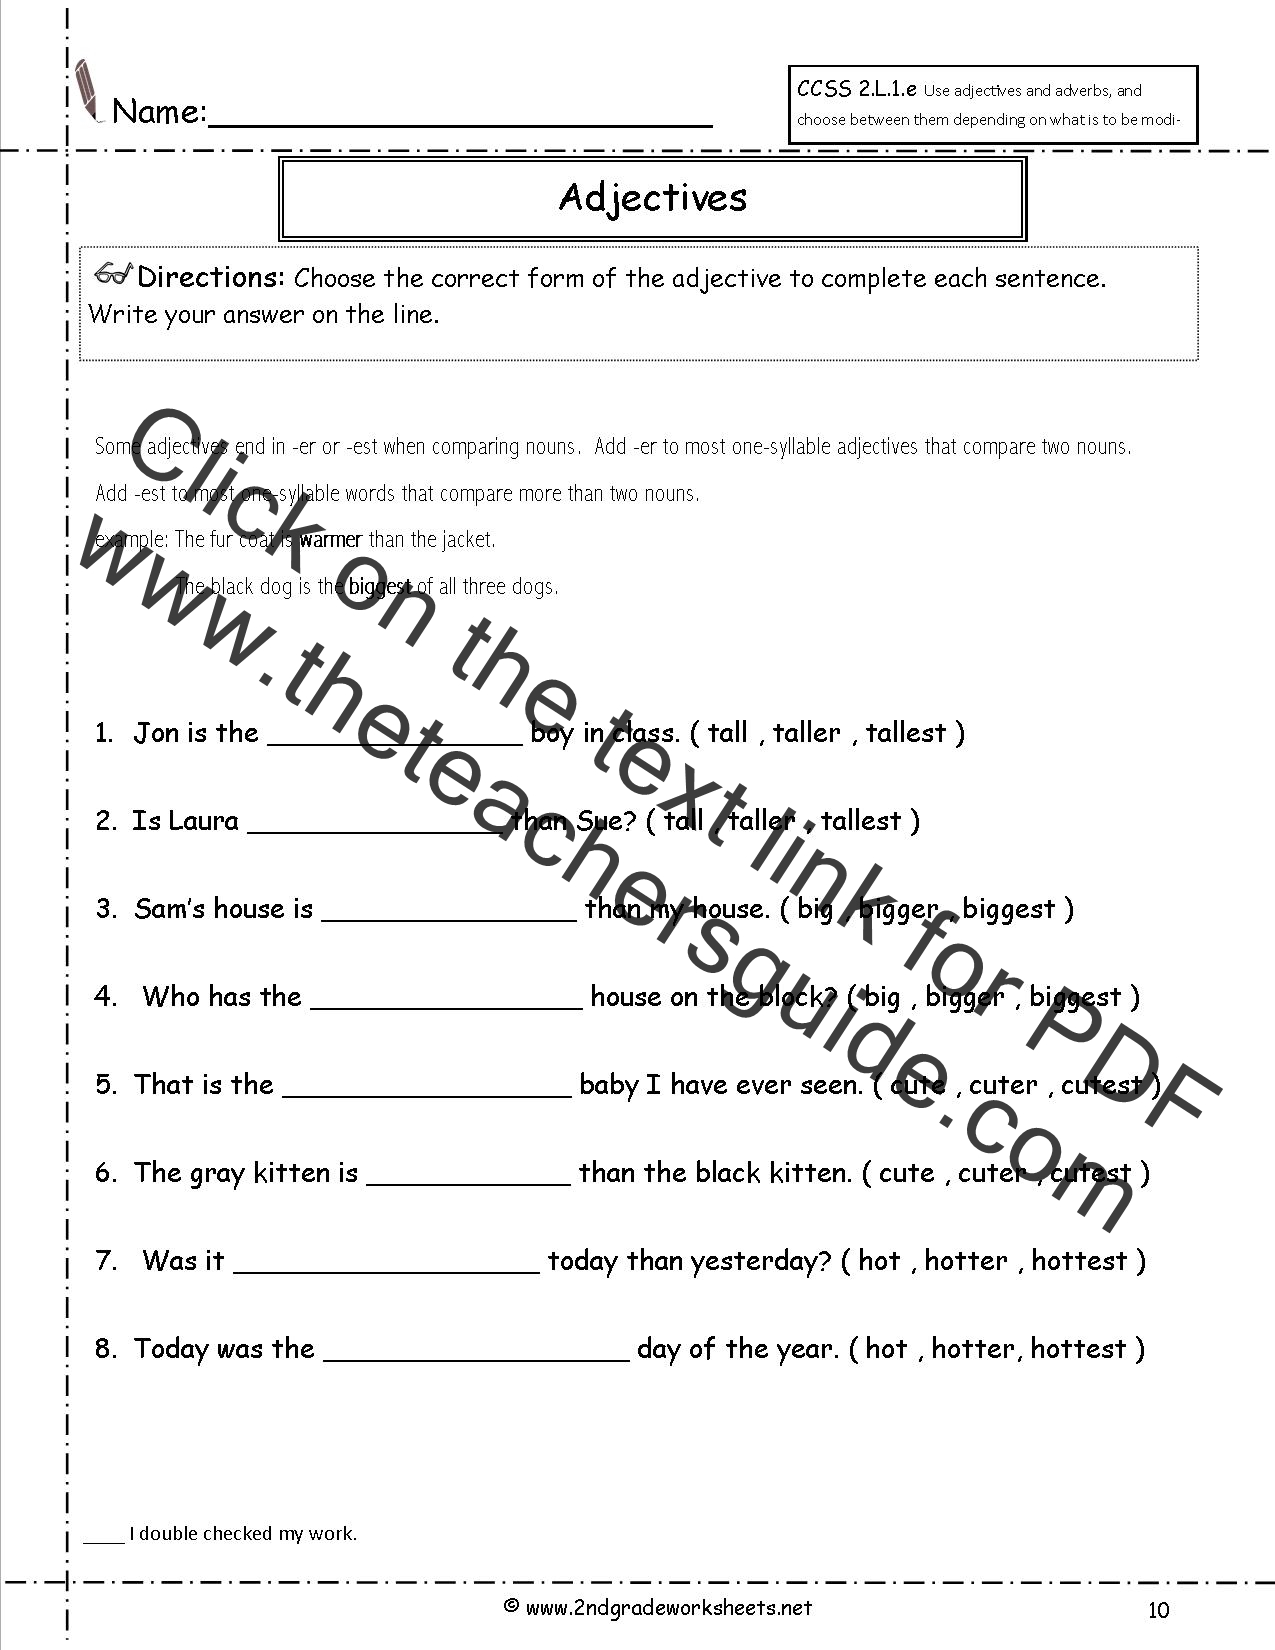 34 Adverbs And Adjectives Worksheet